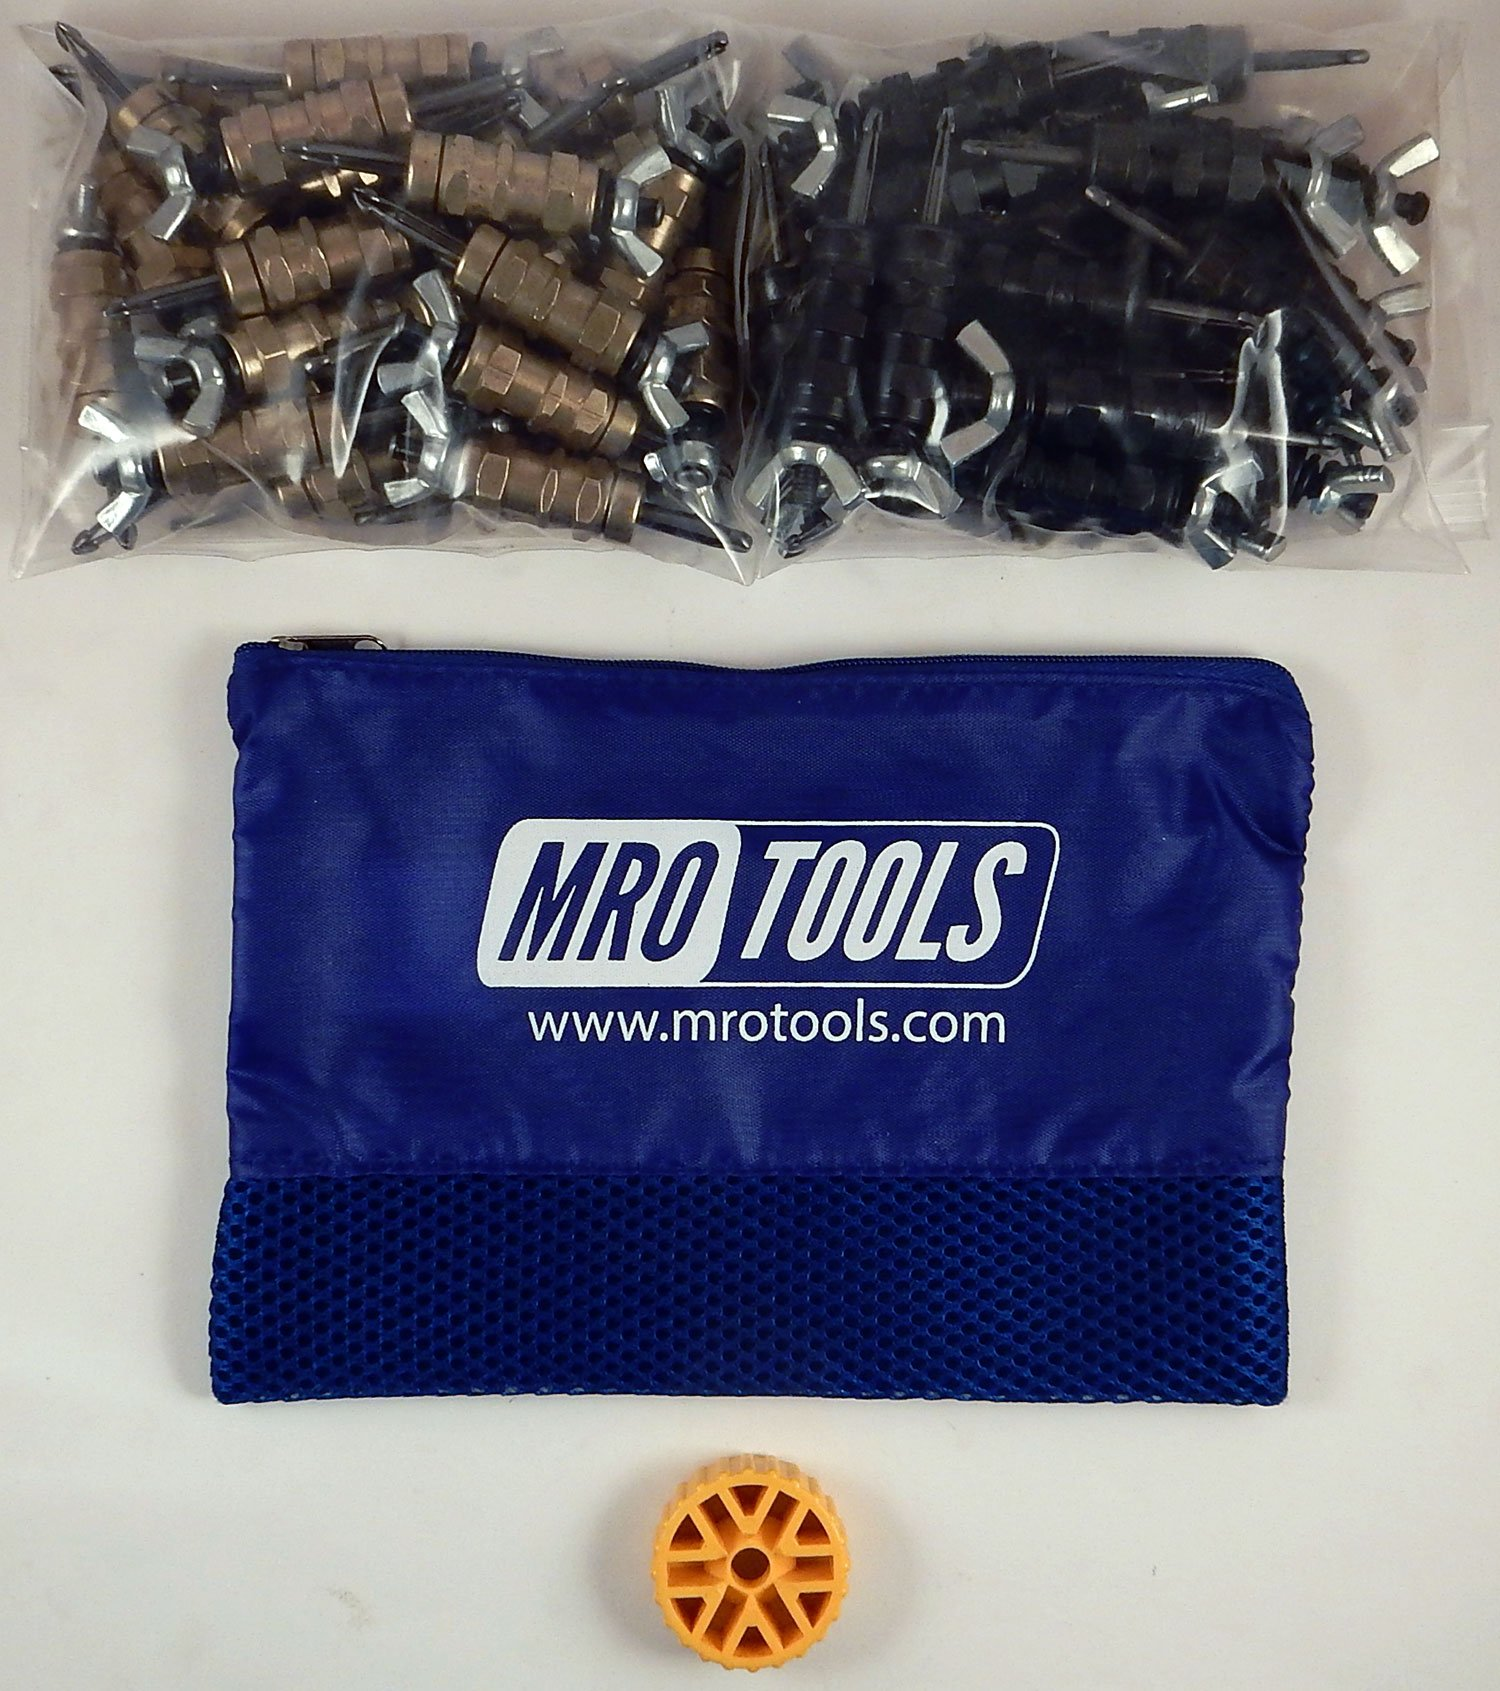 25 3/16 & 25 5/32 Standard Wing-Nut Cleco Fastener w HBHT Tool & Bag (KWN4S50-4)